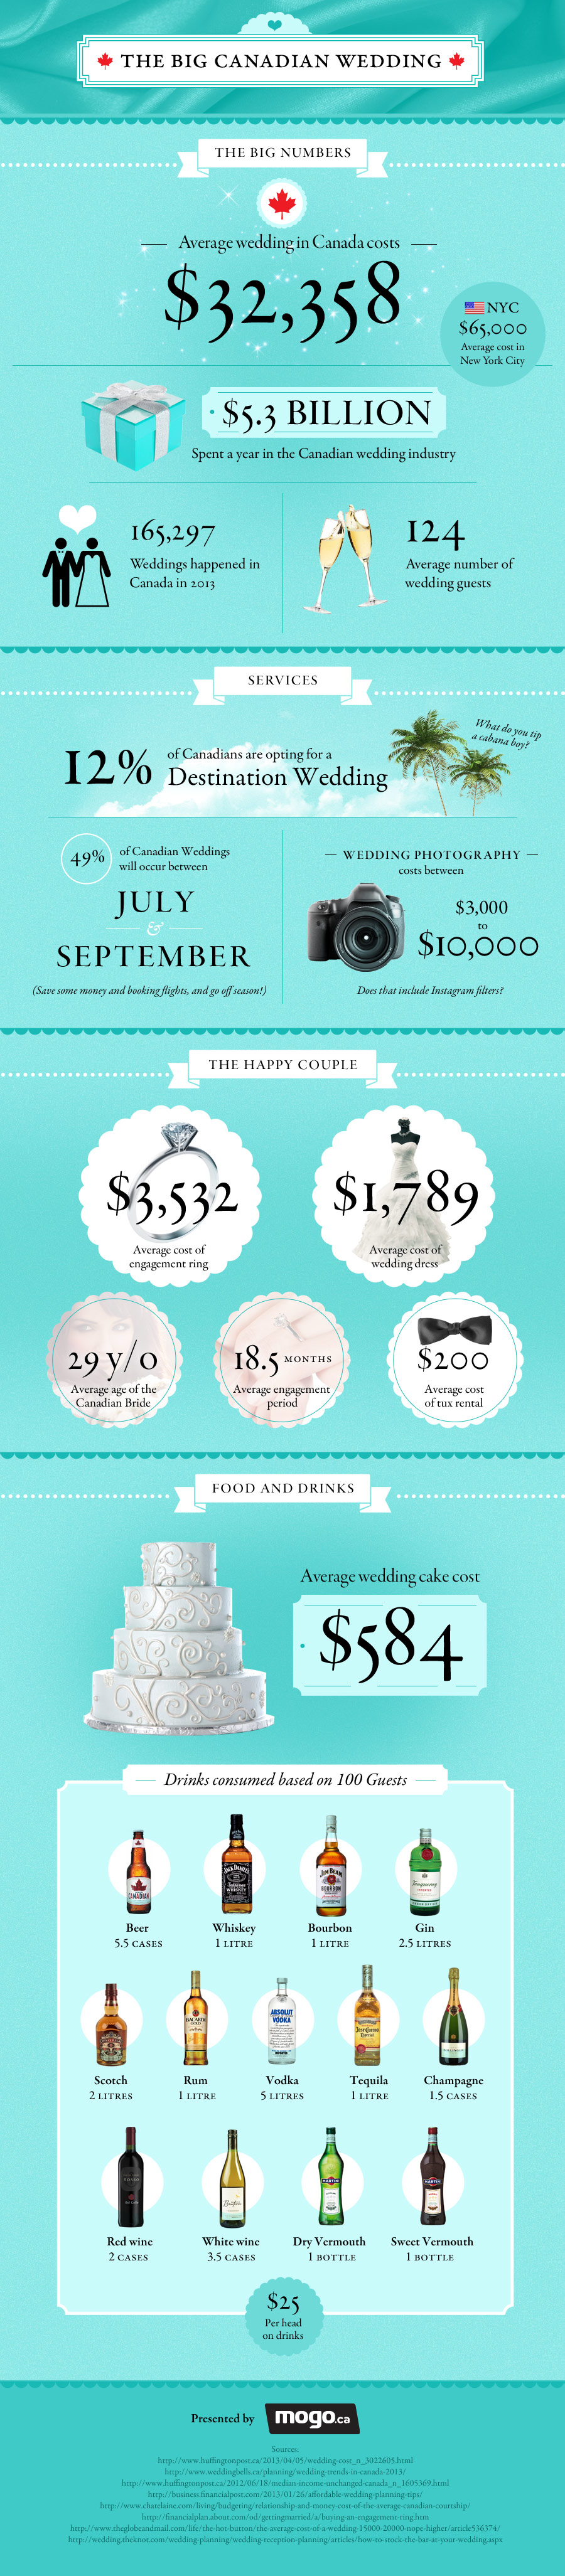 canadian-wedding-cost-infographic-mogo